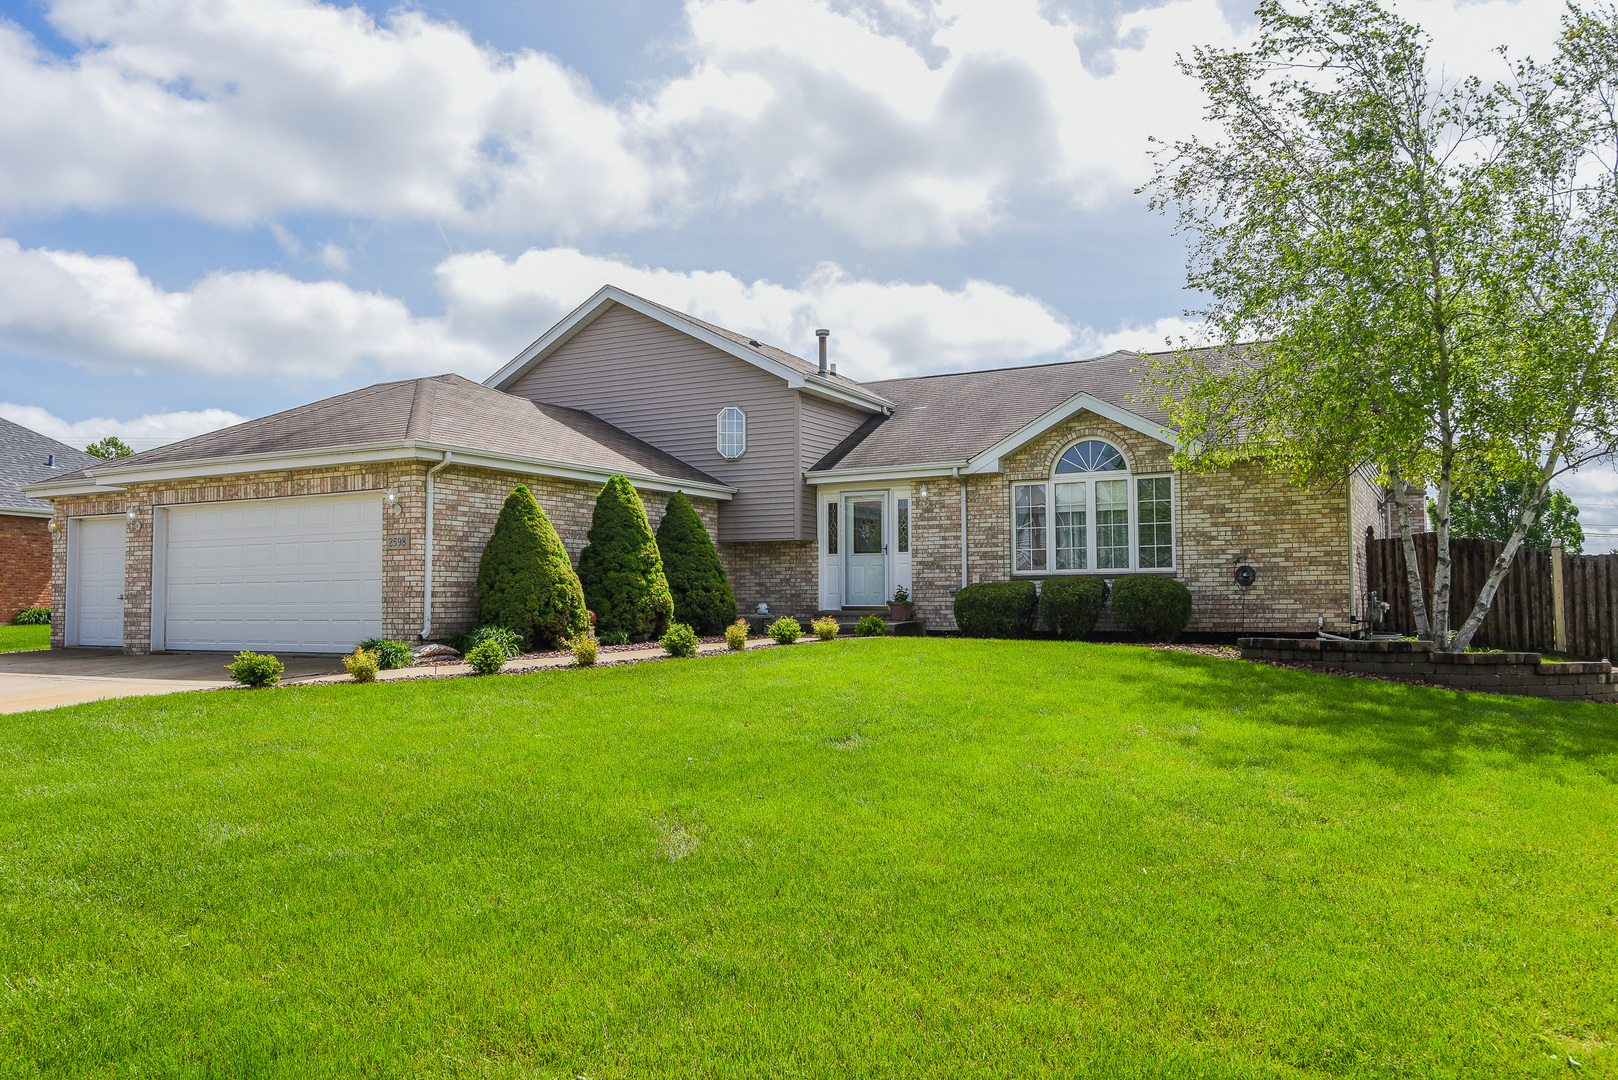 2598 Cattleman Drive, New Lenox in Will County, IL 60451 Home for Sale